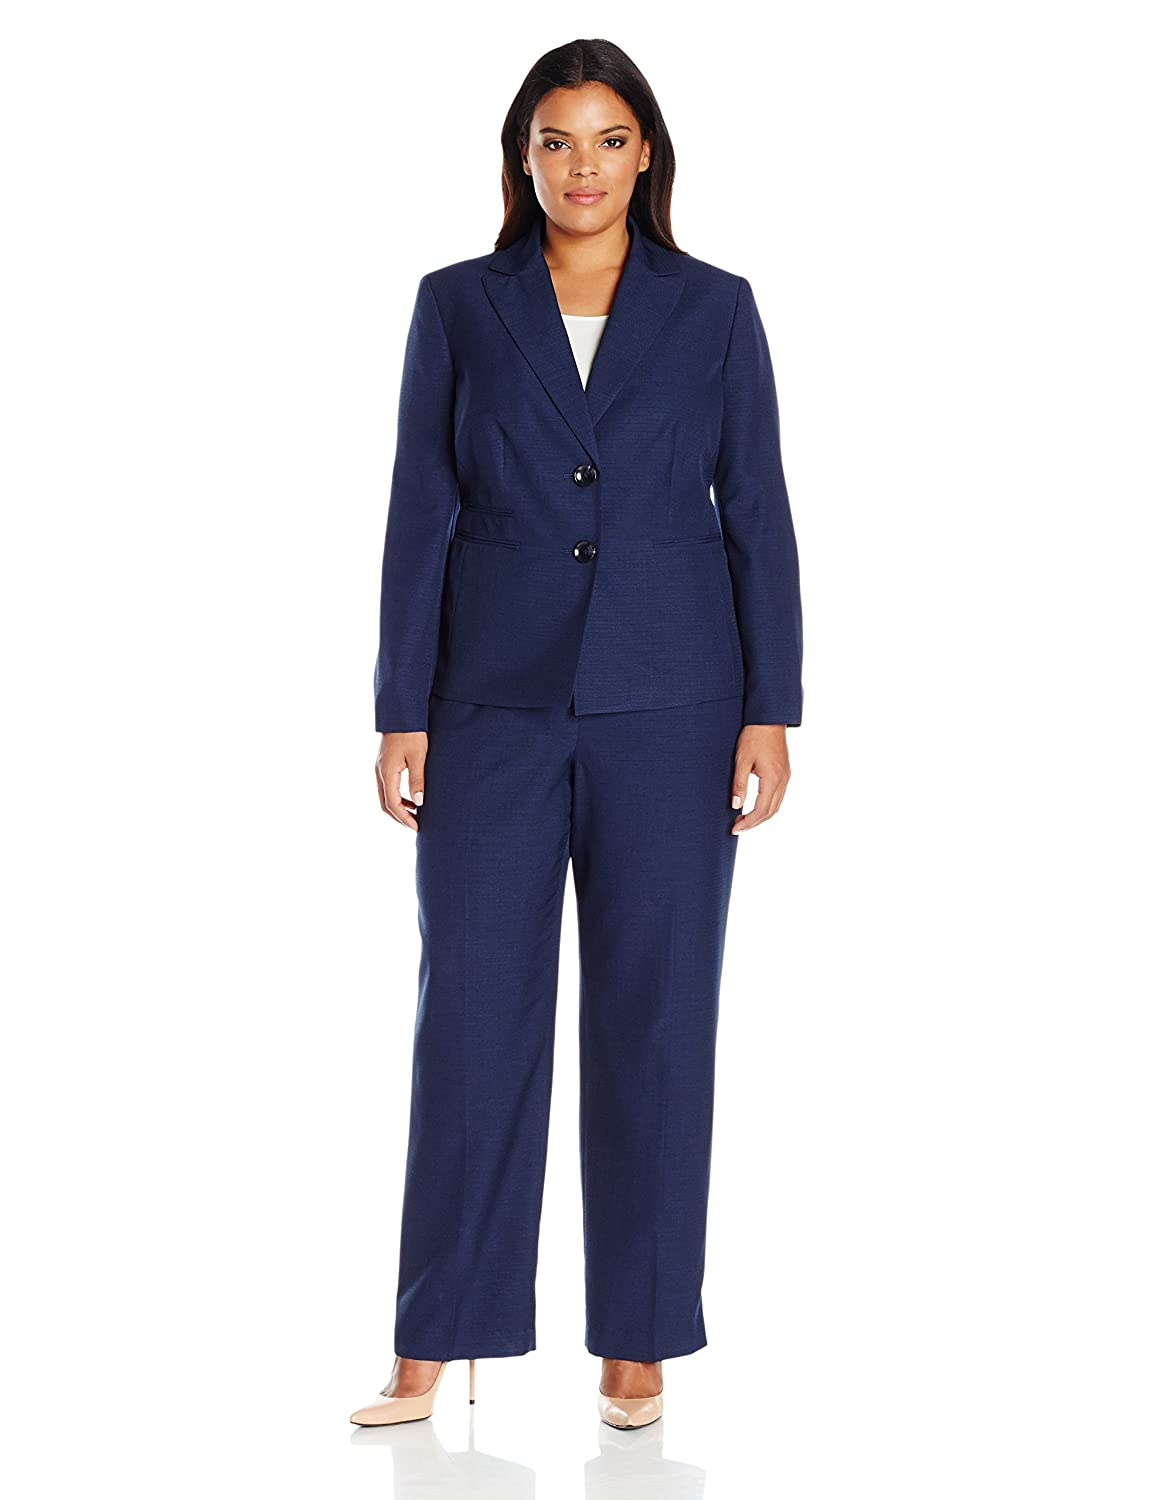 Le Suit Women's Plus Size Two Button Navy Pant Le Suit Women's Suits 50035797-C50